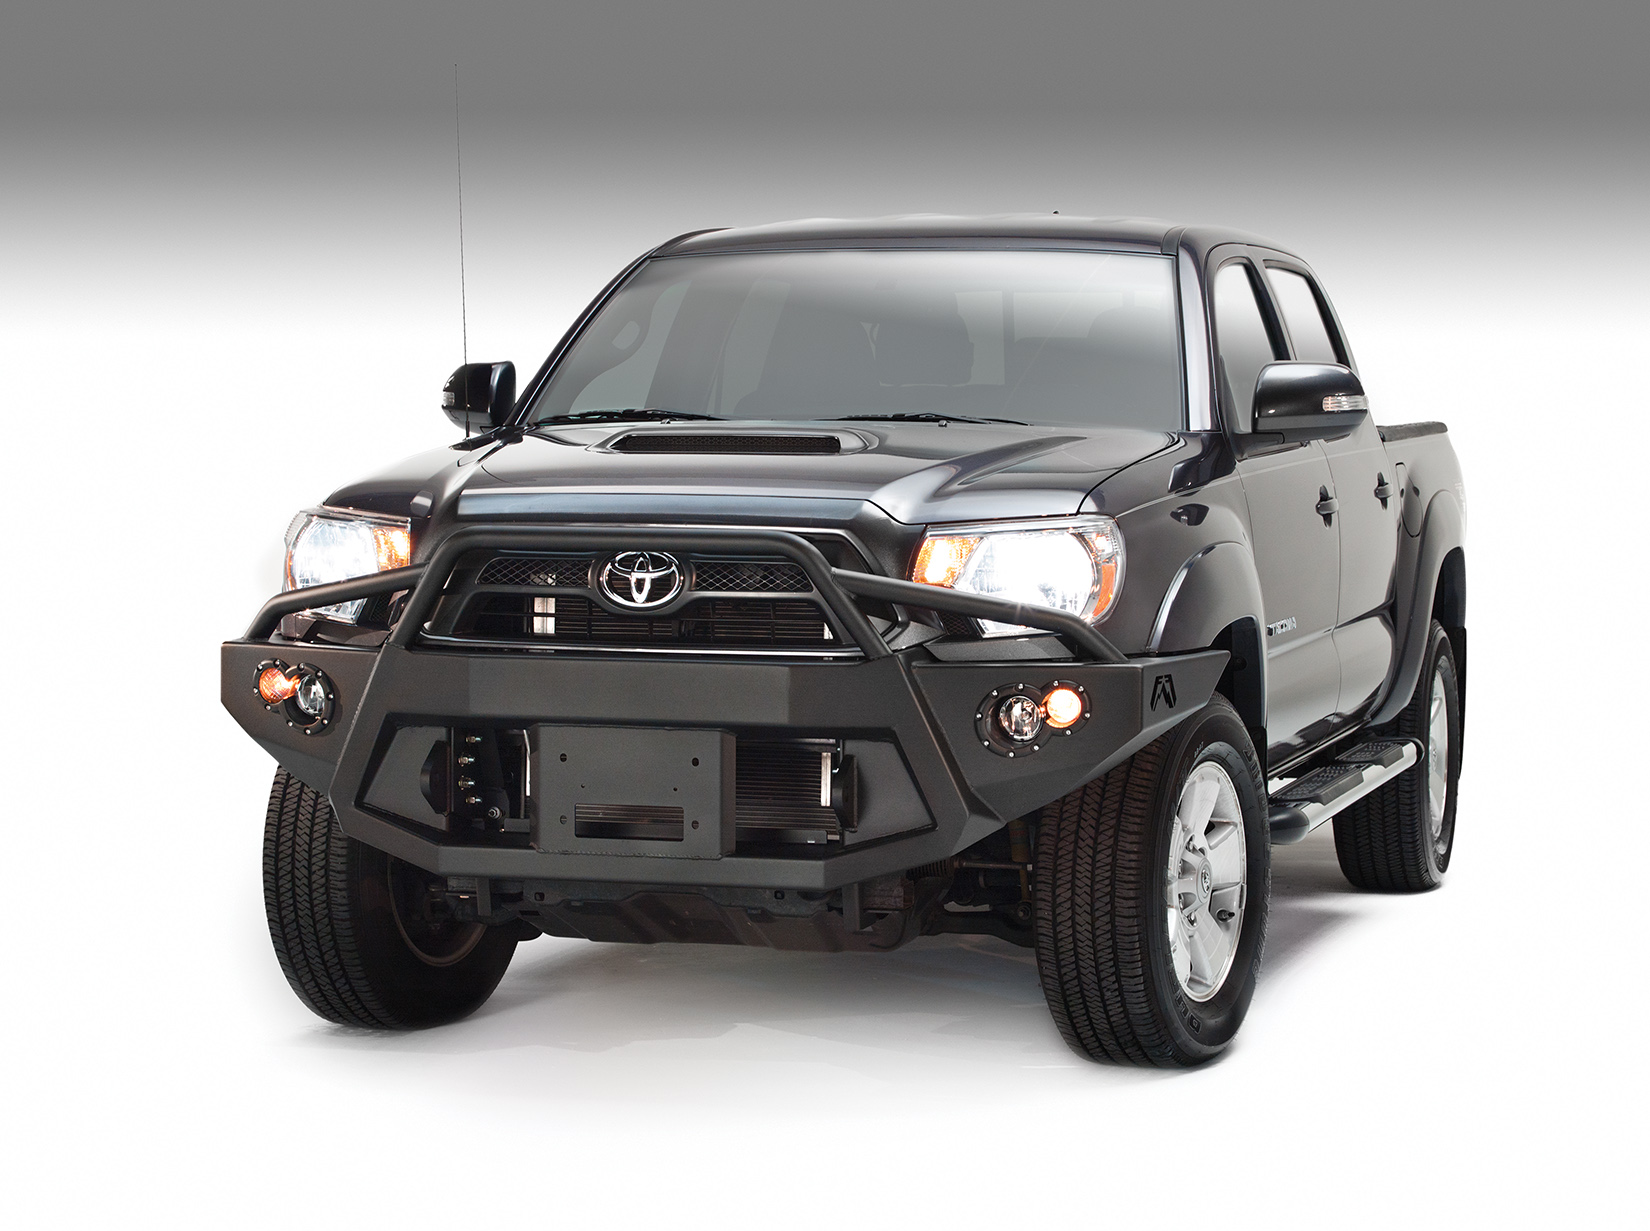 Fab Fours Premium Front Bumper W/ Pre-Runner Guard 2012-2015 Tacoma